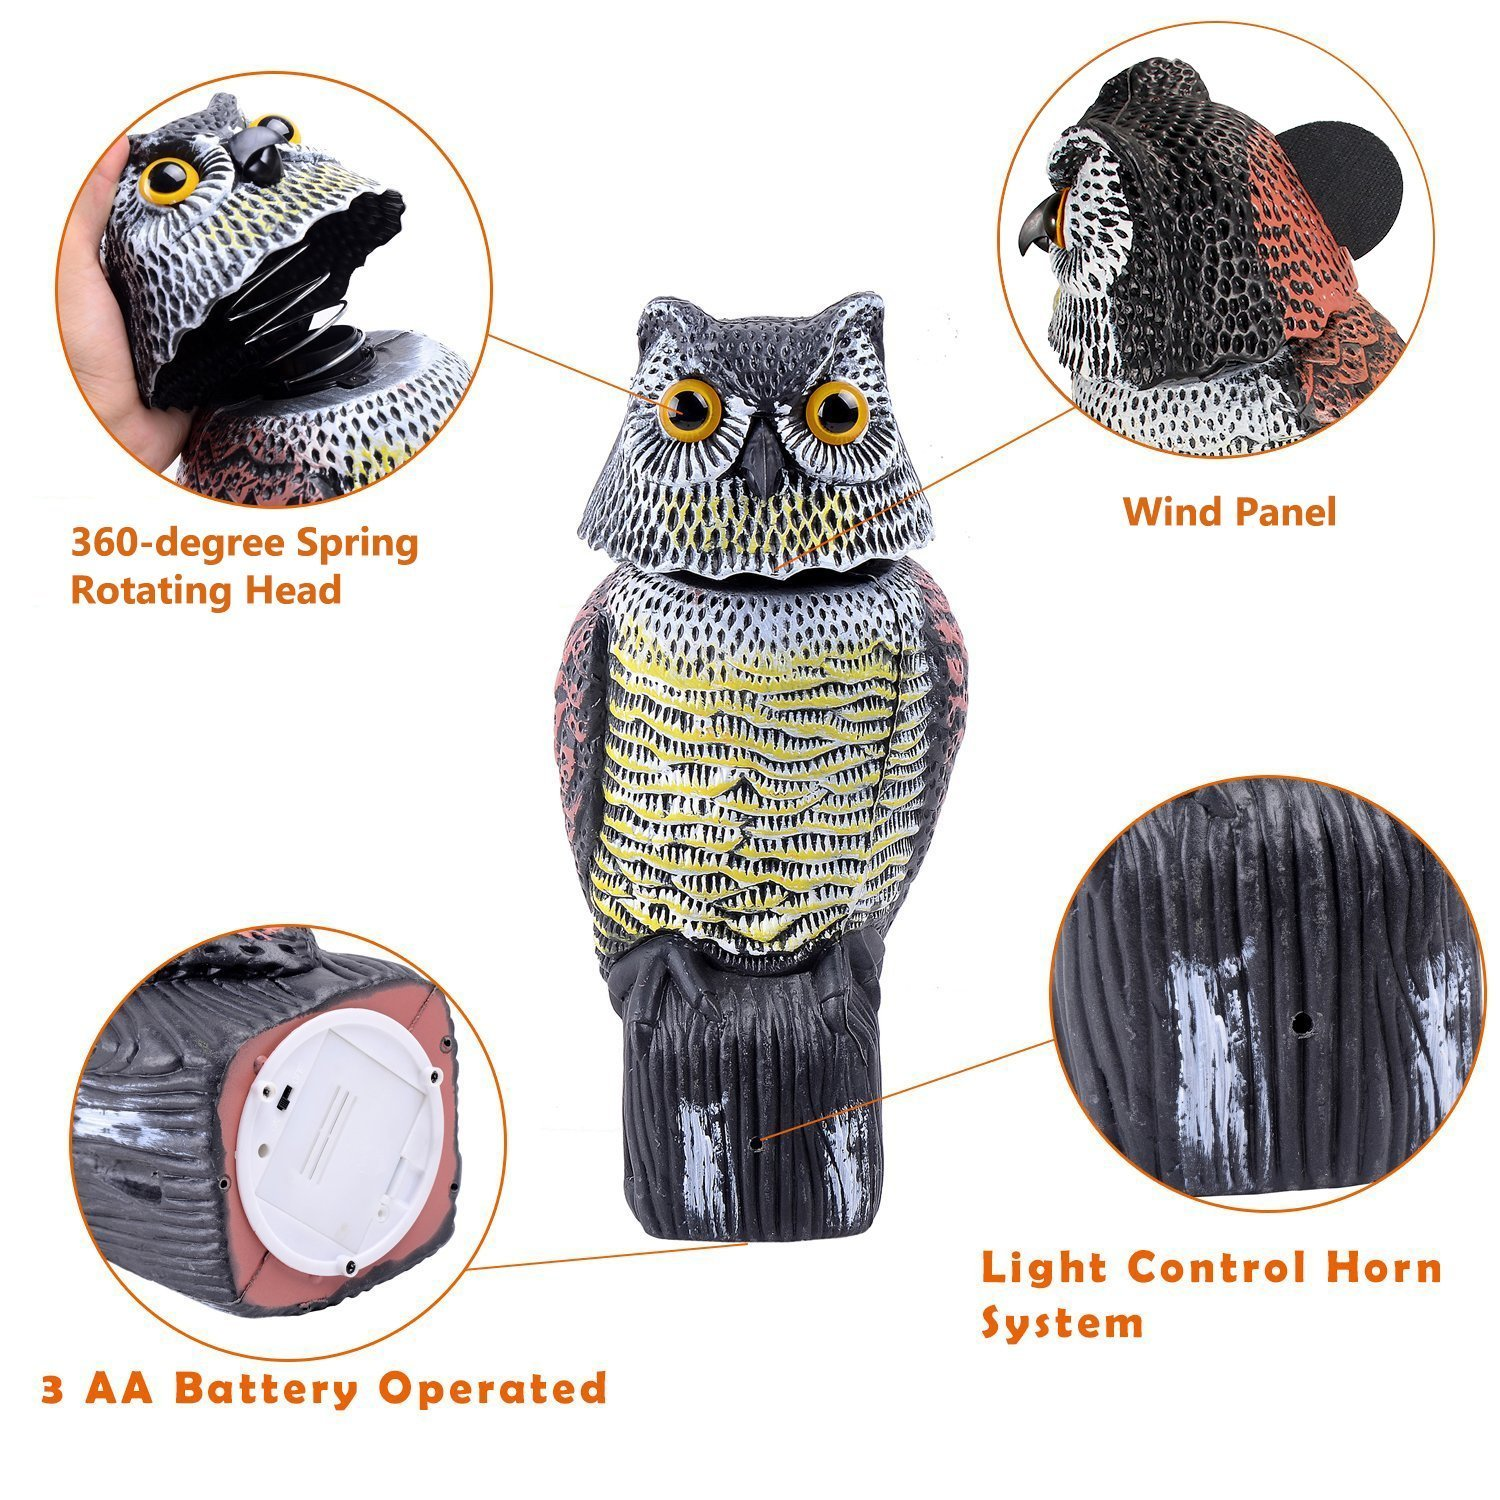 Ohuhu Horned Owl Decoy with Tweet, Light-control System Natural Enemy Pest Deterrent Scarecrow with Rotating Head Pest Control Repellents by Ohuhu (Image #2)